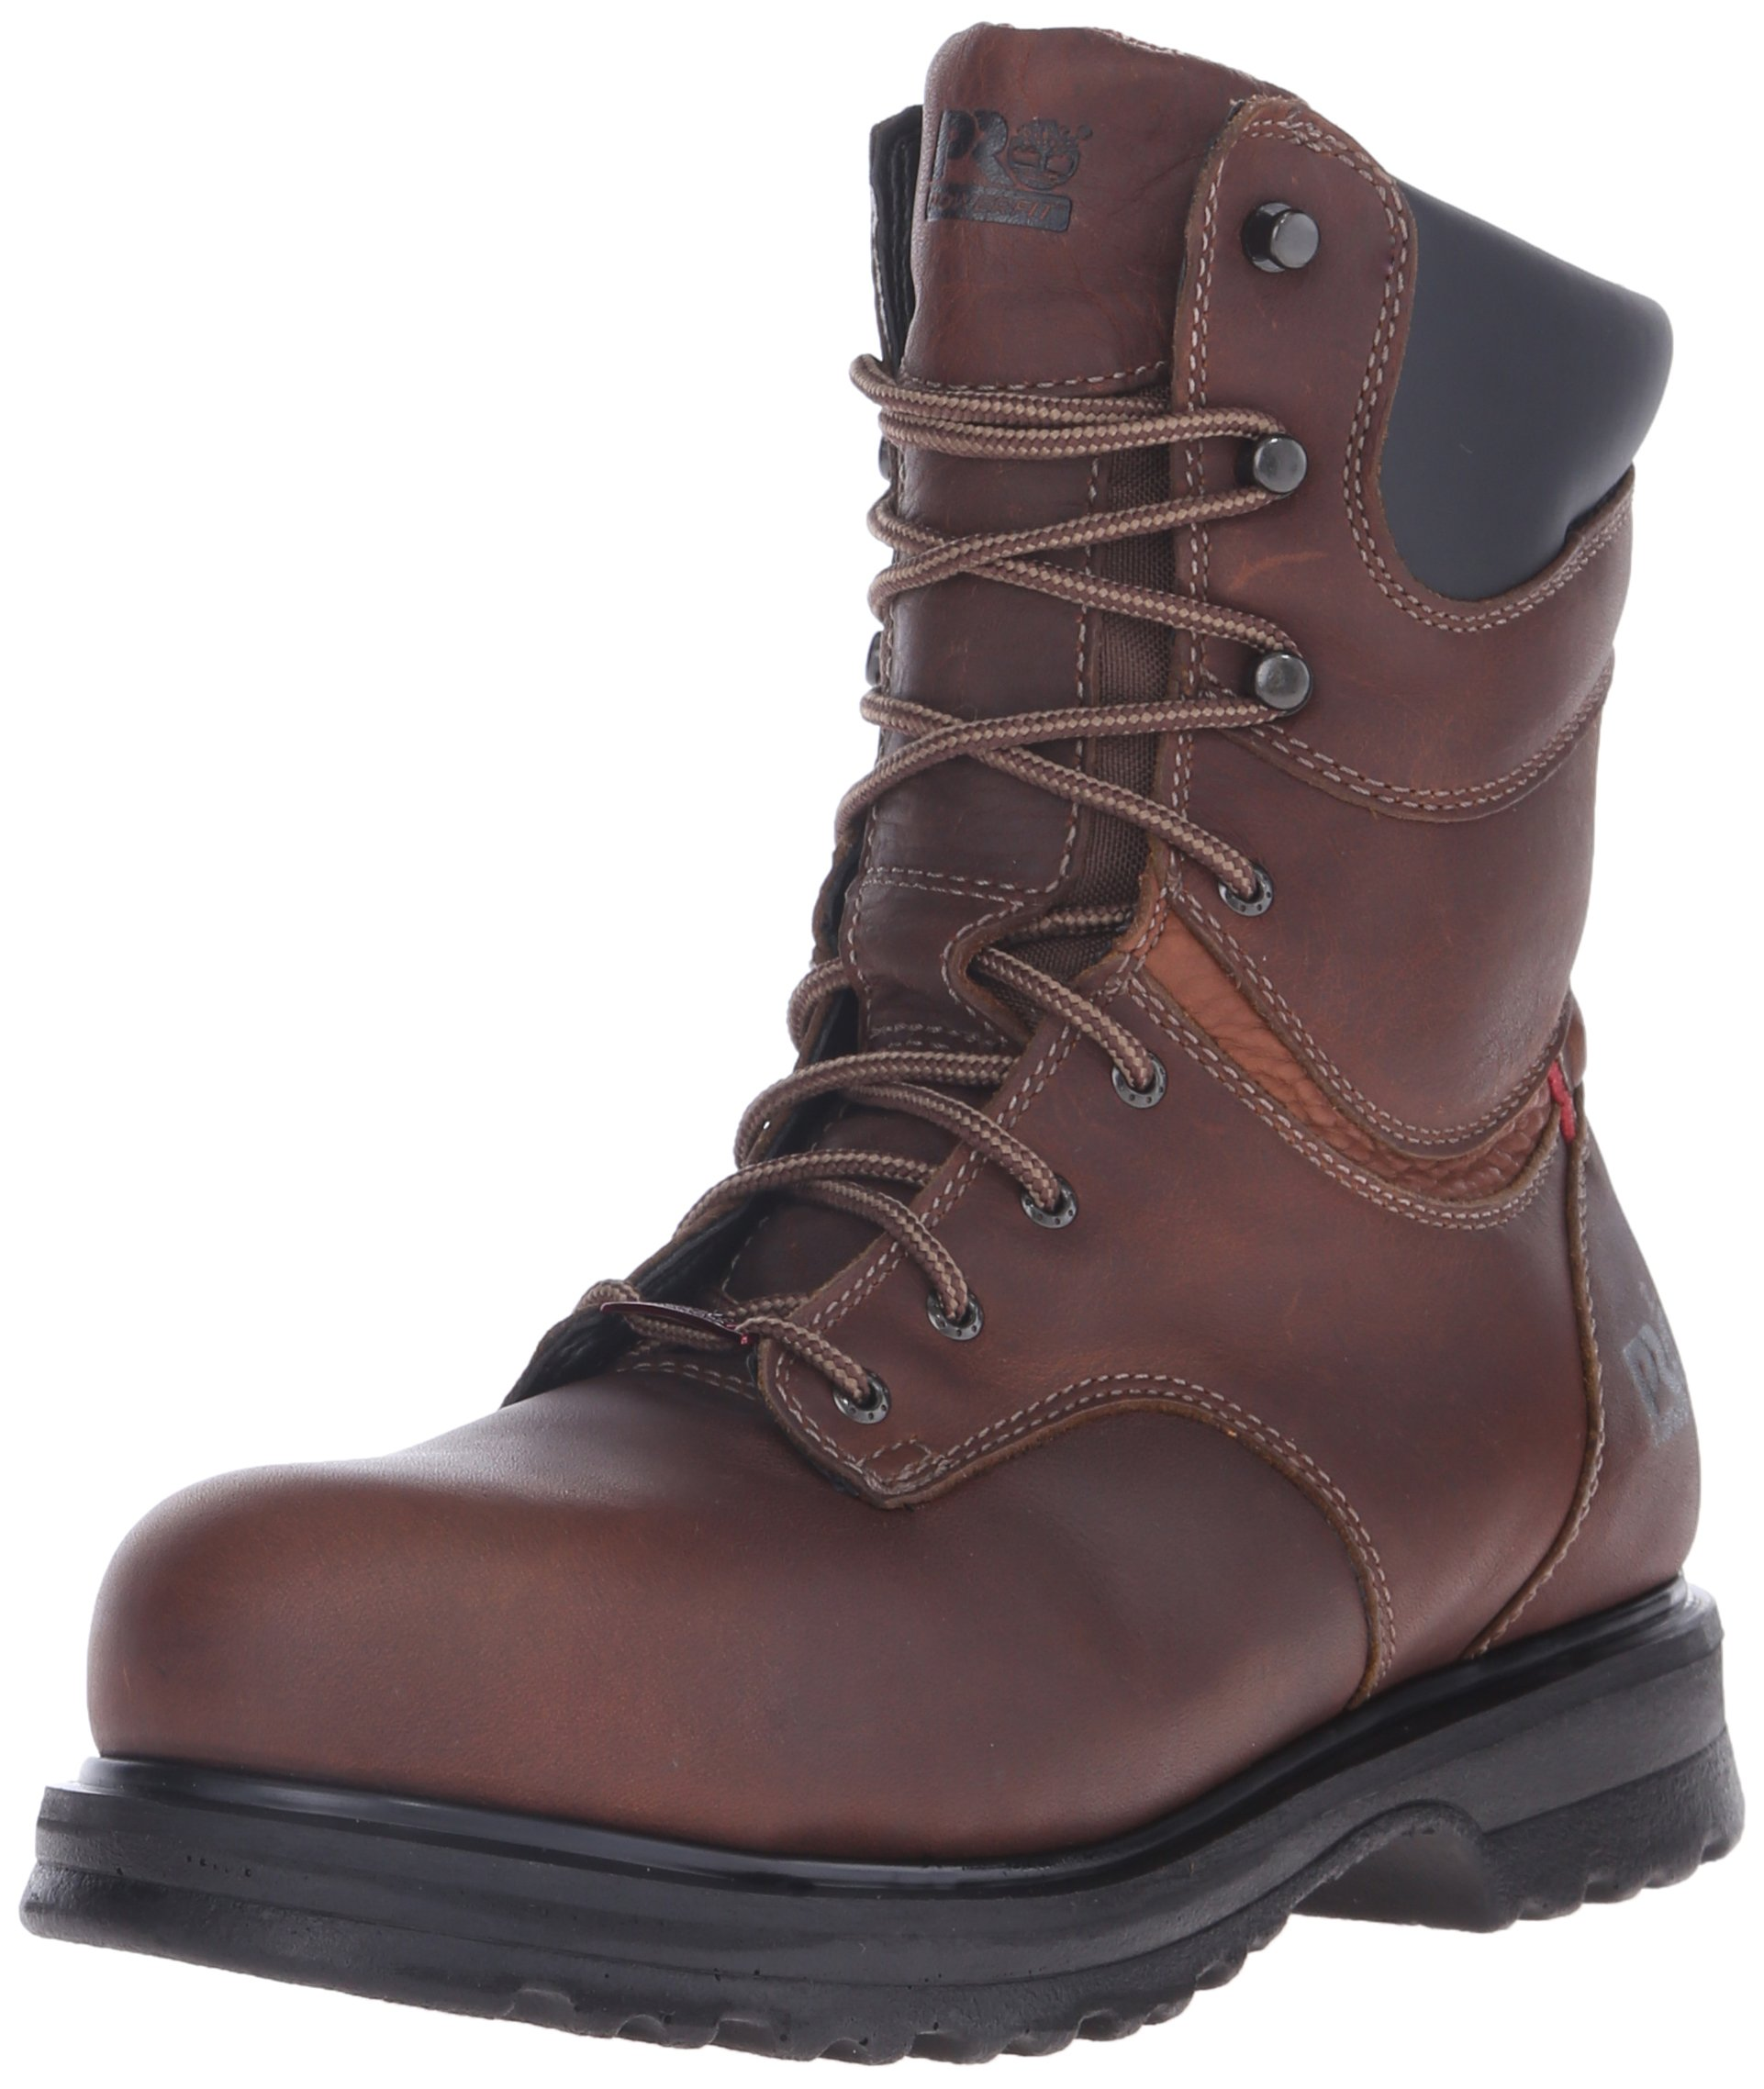 Timberland PRO Women's 88116 Rigmaster Work Boot,Brown,9 M US